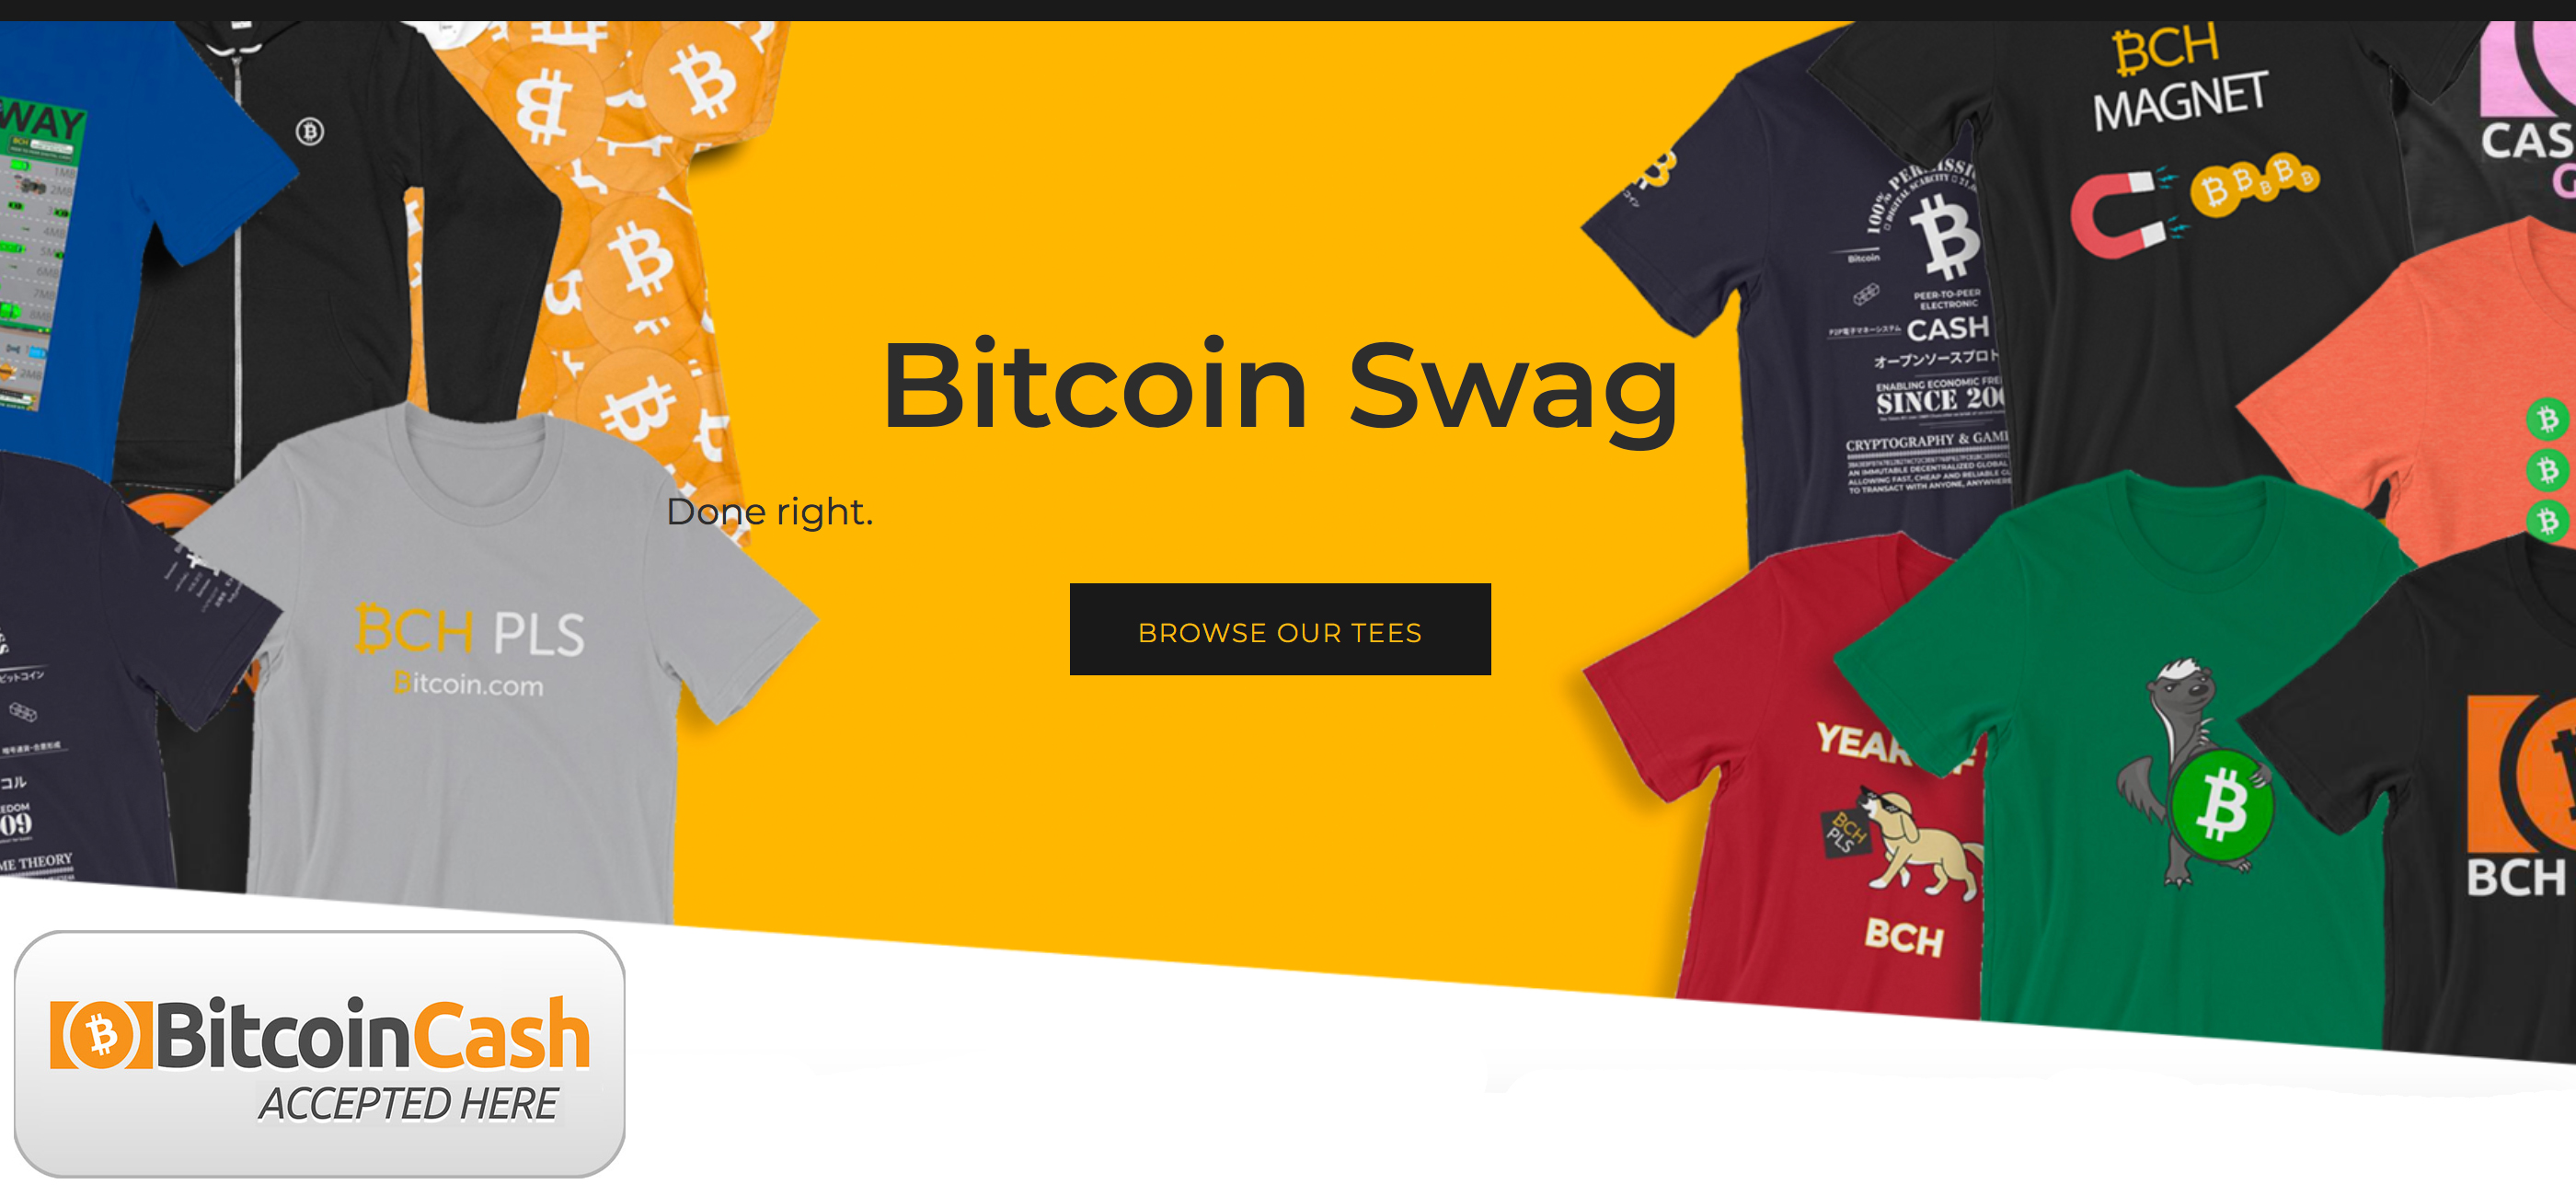 Bitcoin.com Store Adds More Hot New Items and Amazon Gift Cards